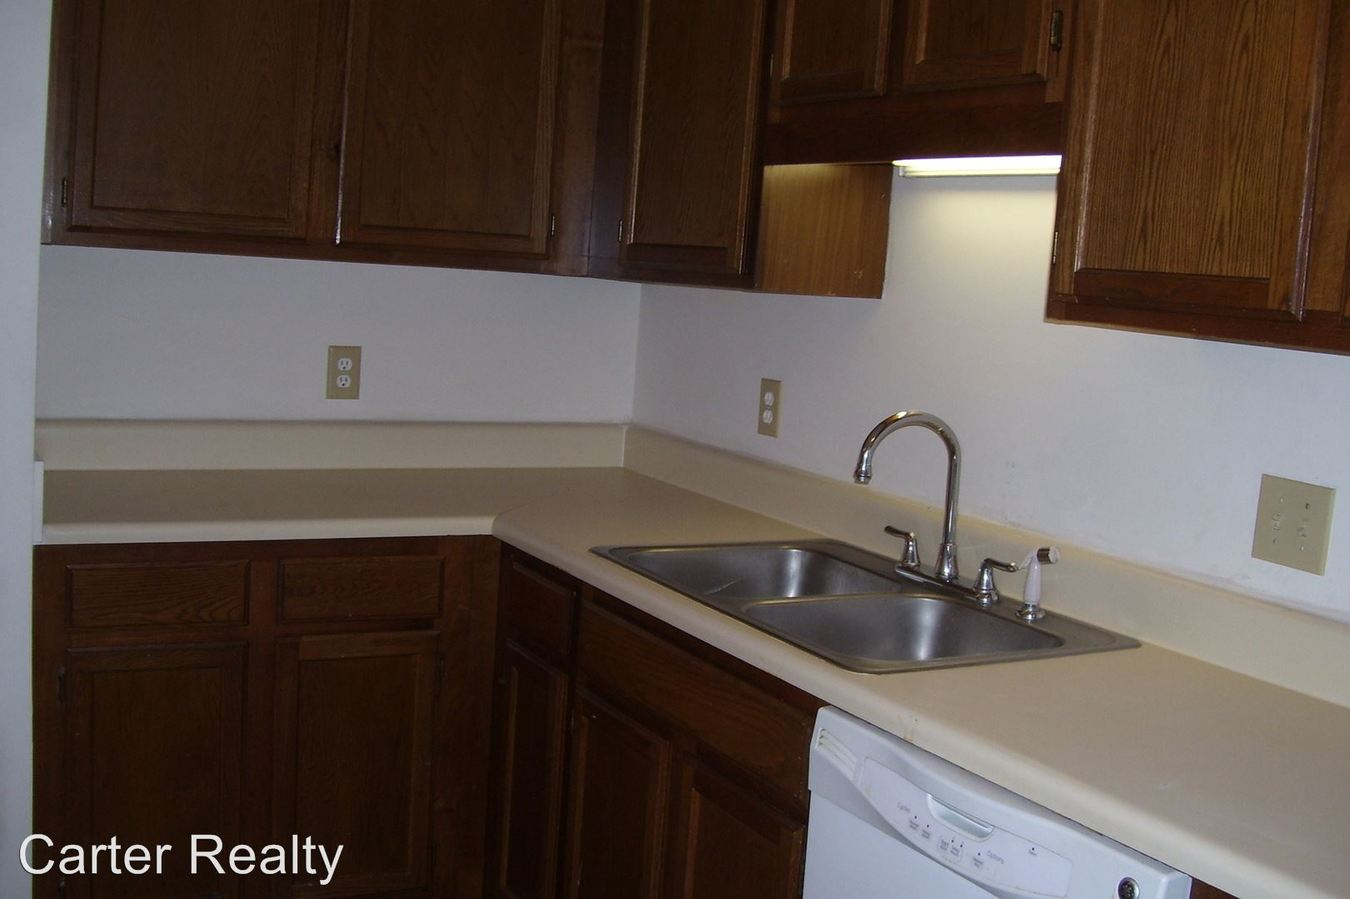 2 Bedrooms 2 Bathrooms Apartment for rent at Winners Circle in Cary, NC